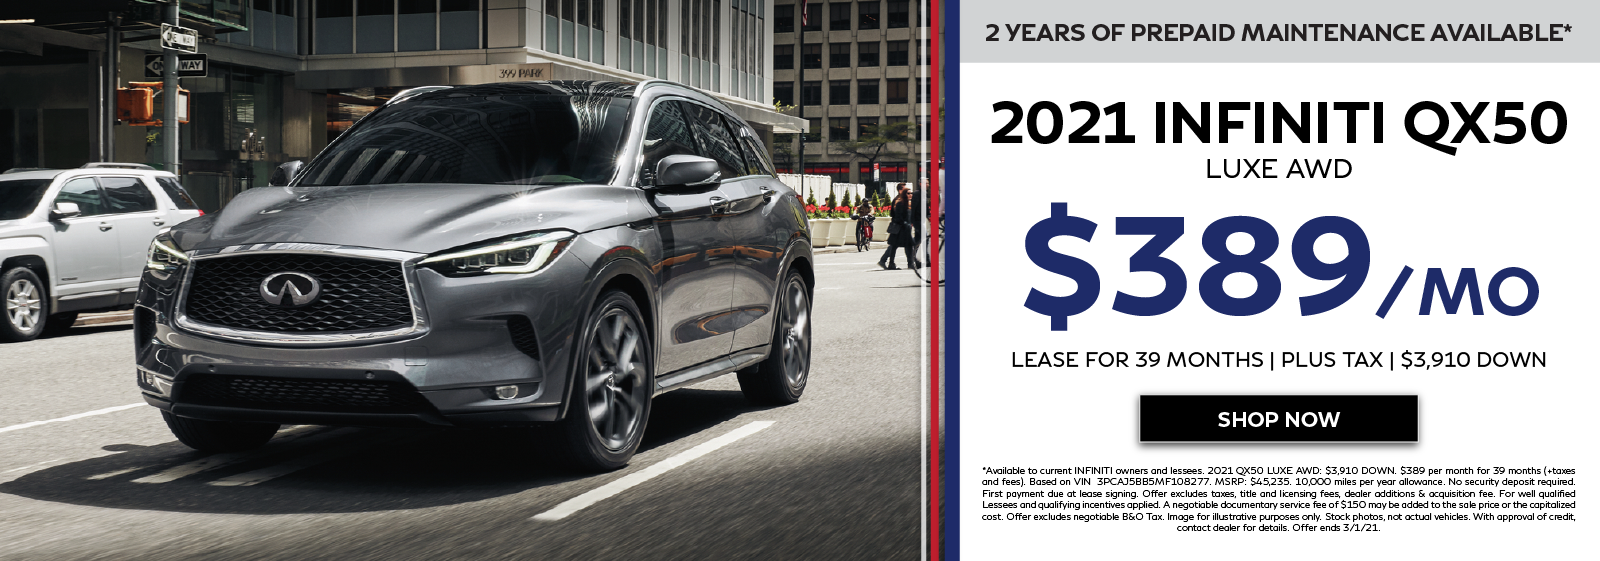 2021 QX50 LUXE AWD Offers. Click to shop now.